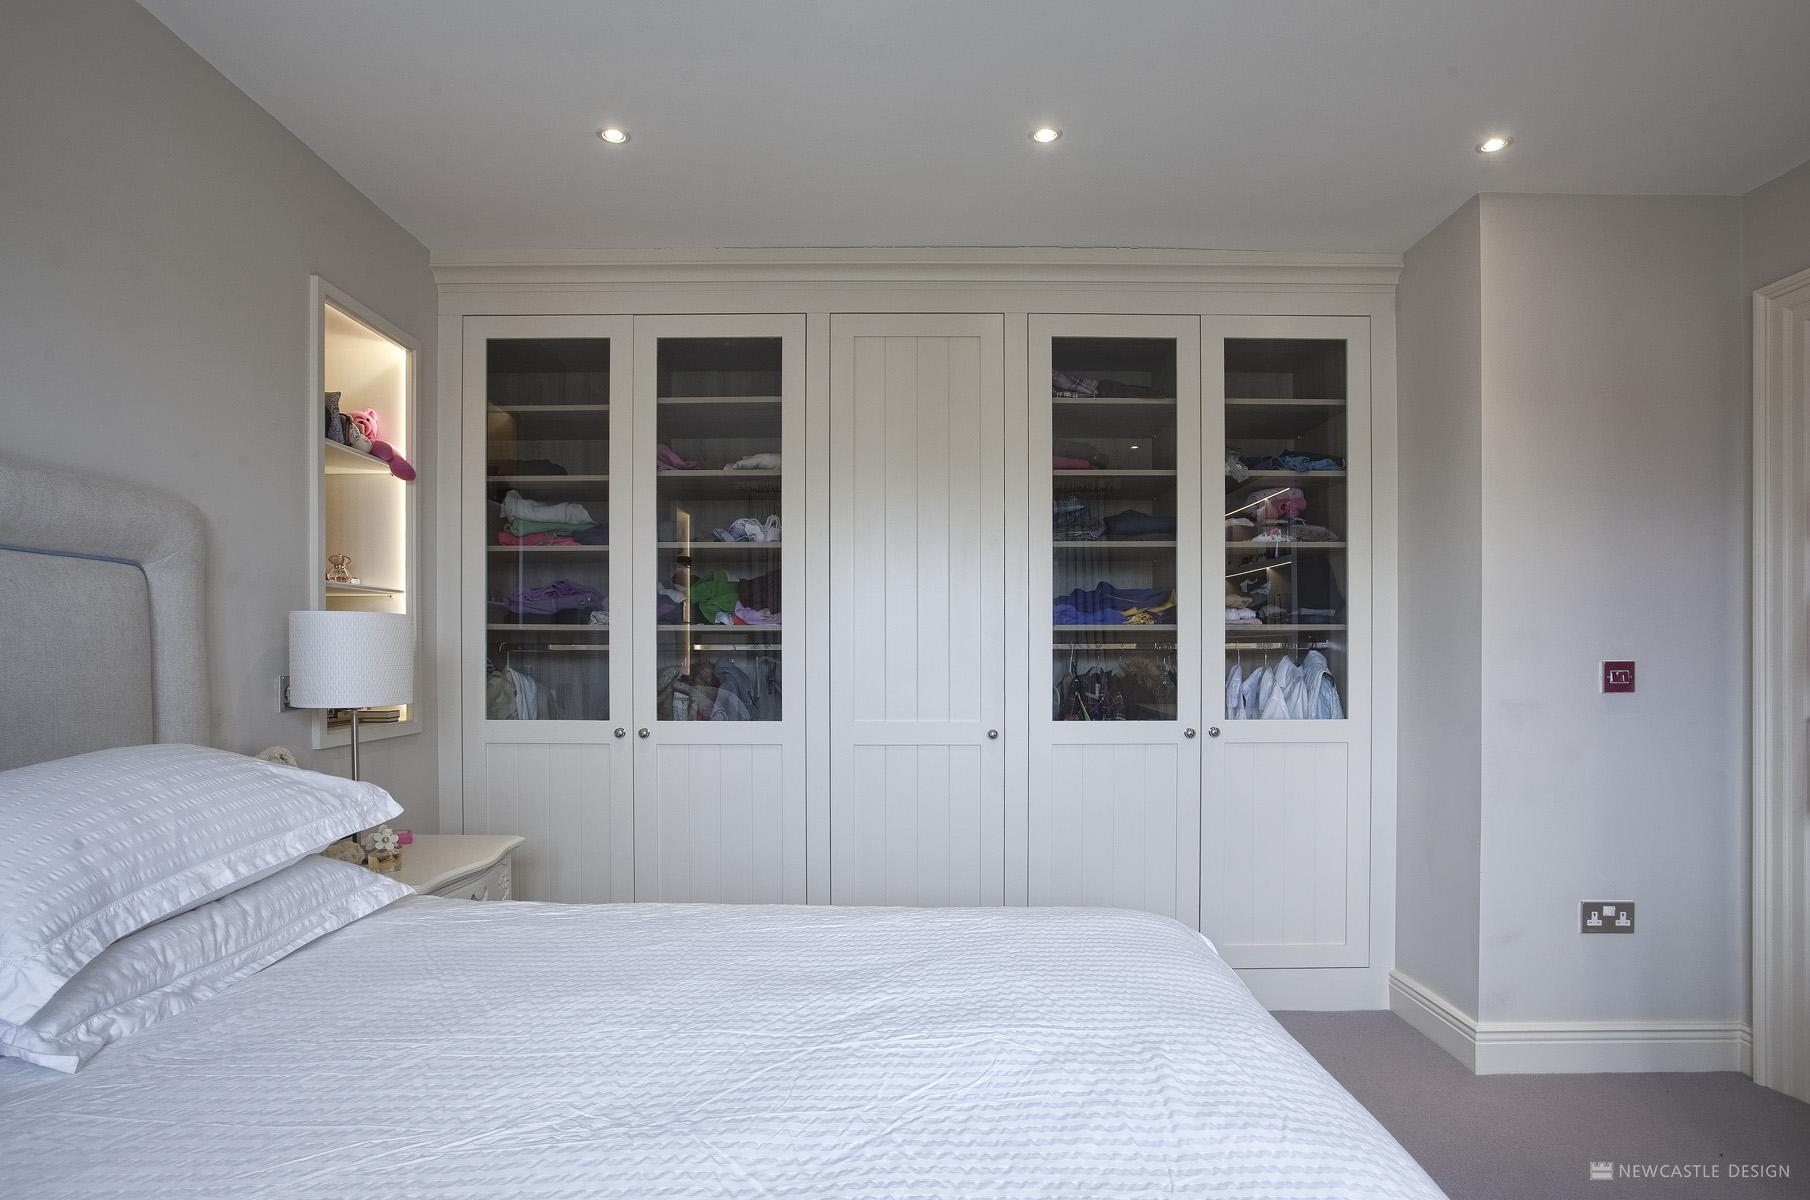 fitted forum furniture fusion luxe blandford bedroom areas bespoke door facilities storage dorset wardrobes wardrobe sliding solutions